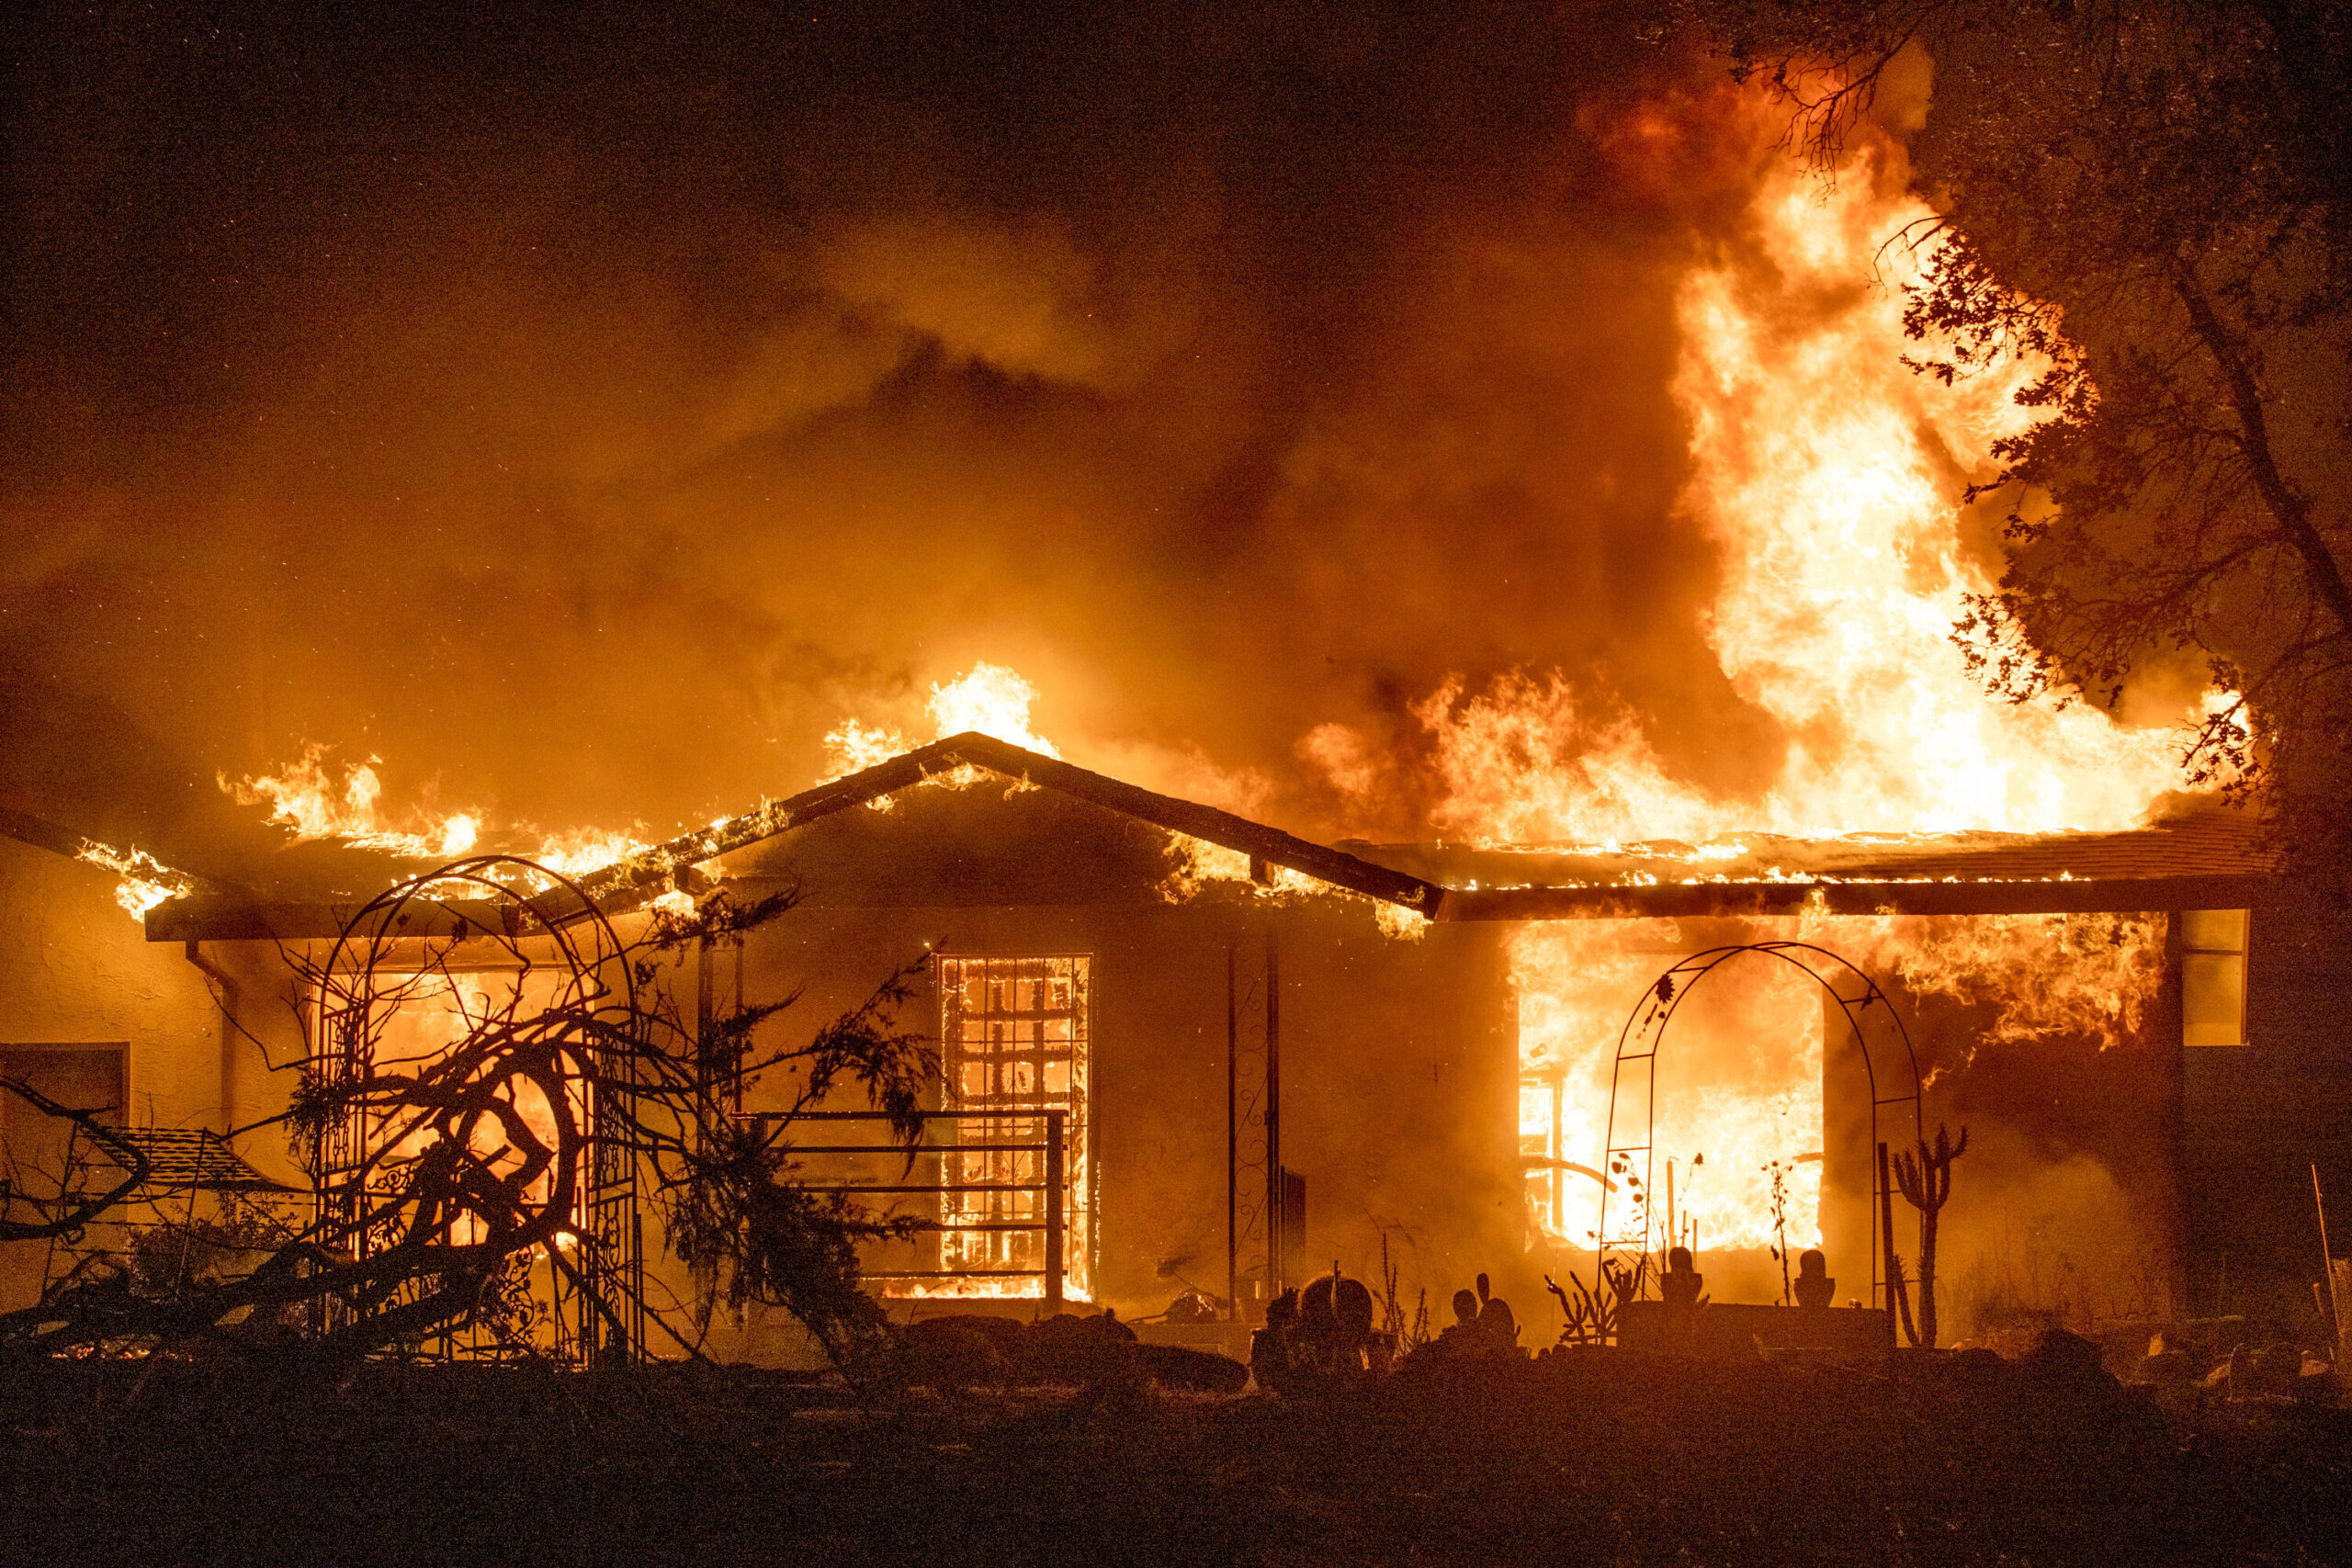 <i>Ethan Swope/AP</i><br/>A house burns on Platina Road at the Zogg Fire near Ono